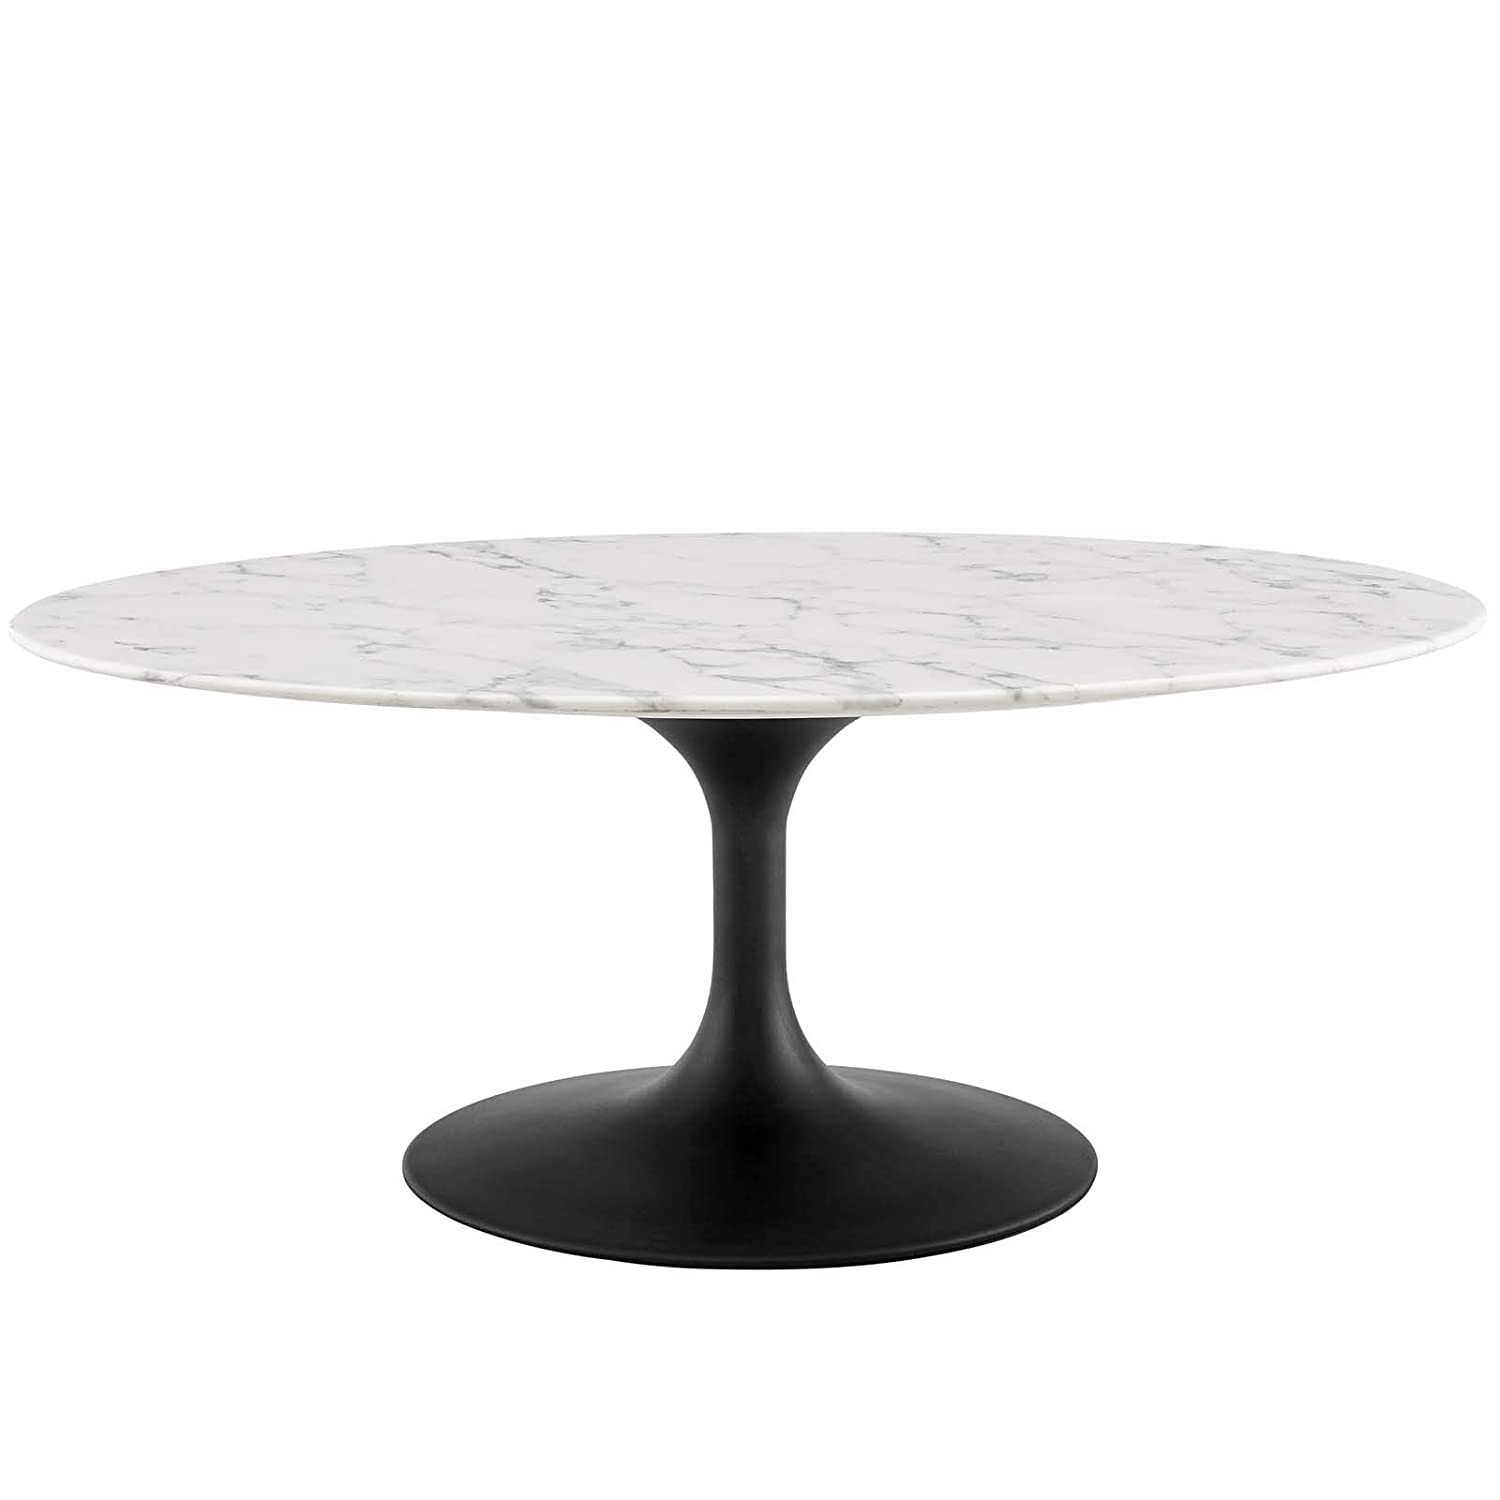 42 Oval Shape Coffee Table With Artificial Marble Top And Black